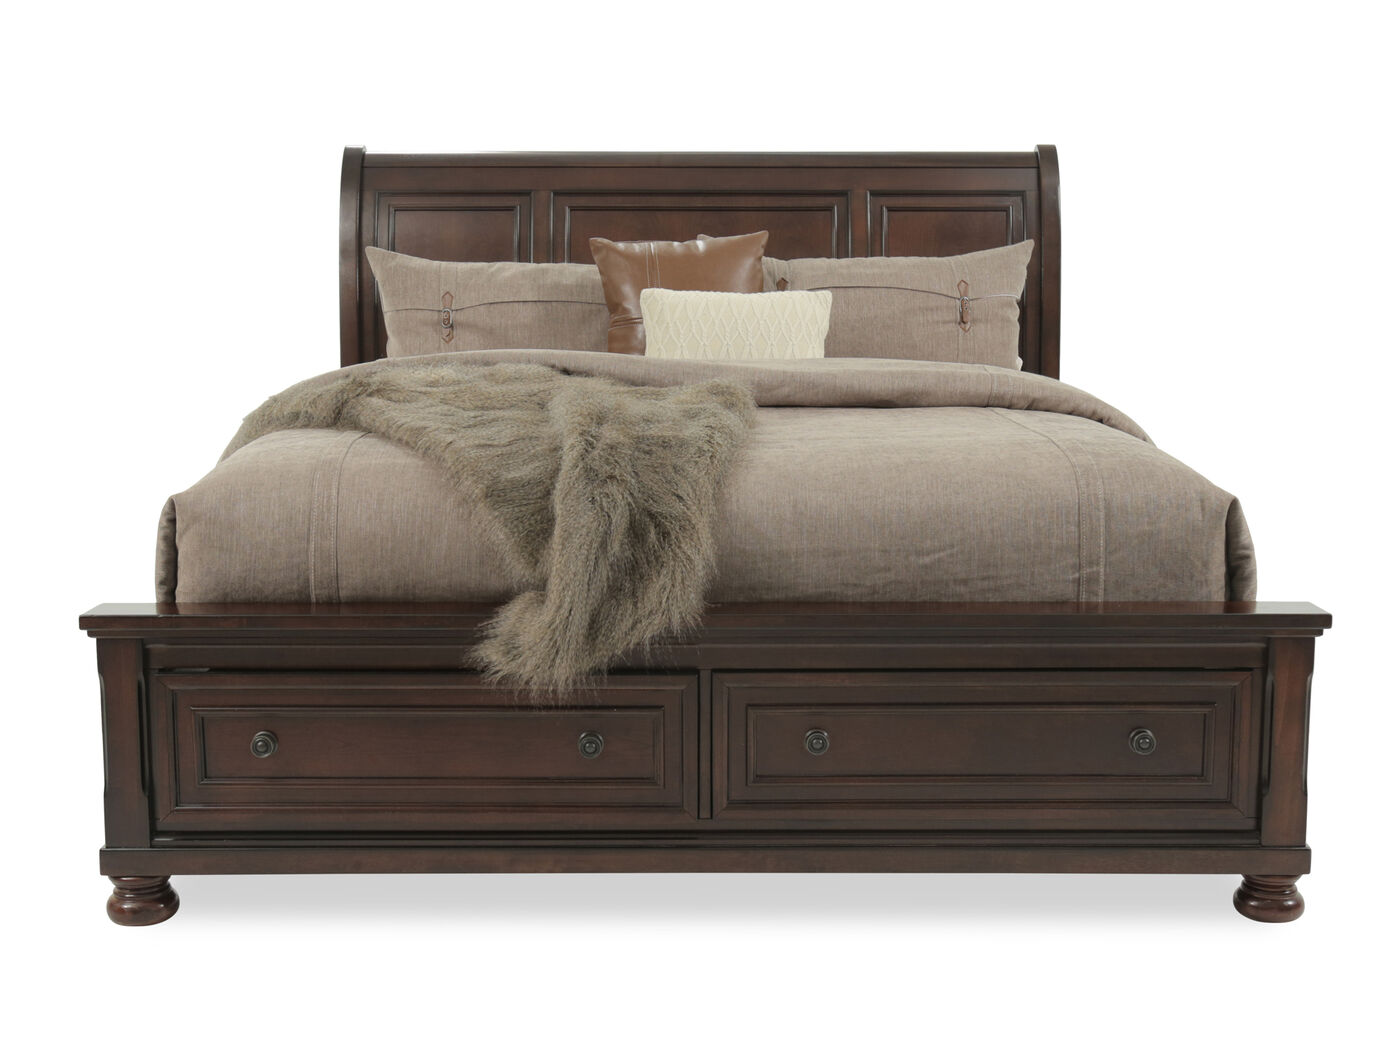 57 Quot Traditional Beveled Sleigh Bed In Dark Brown Mathis